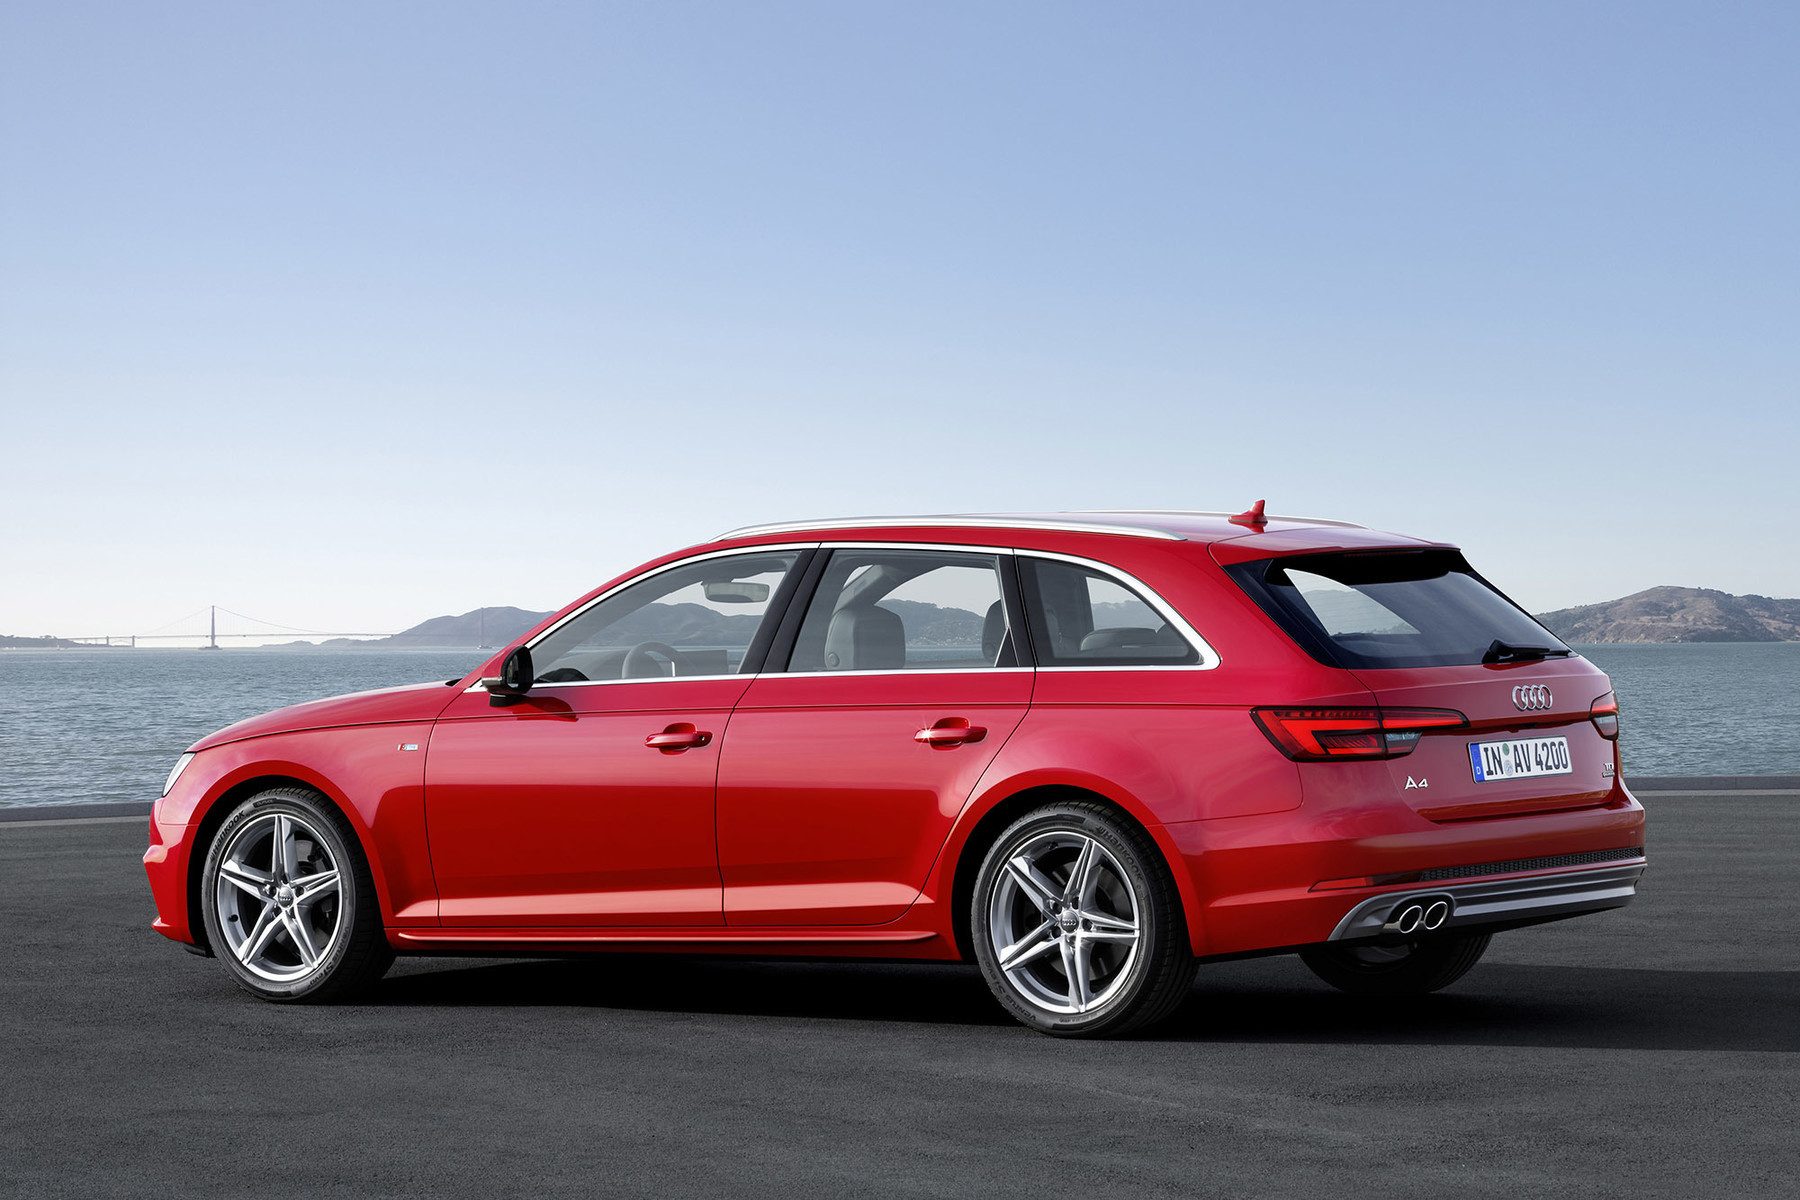 The new Audi A4